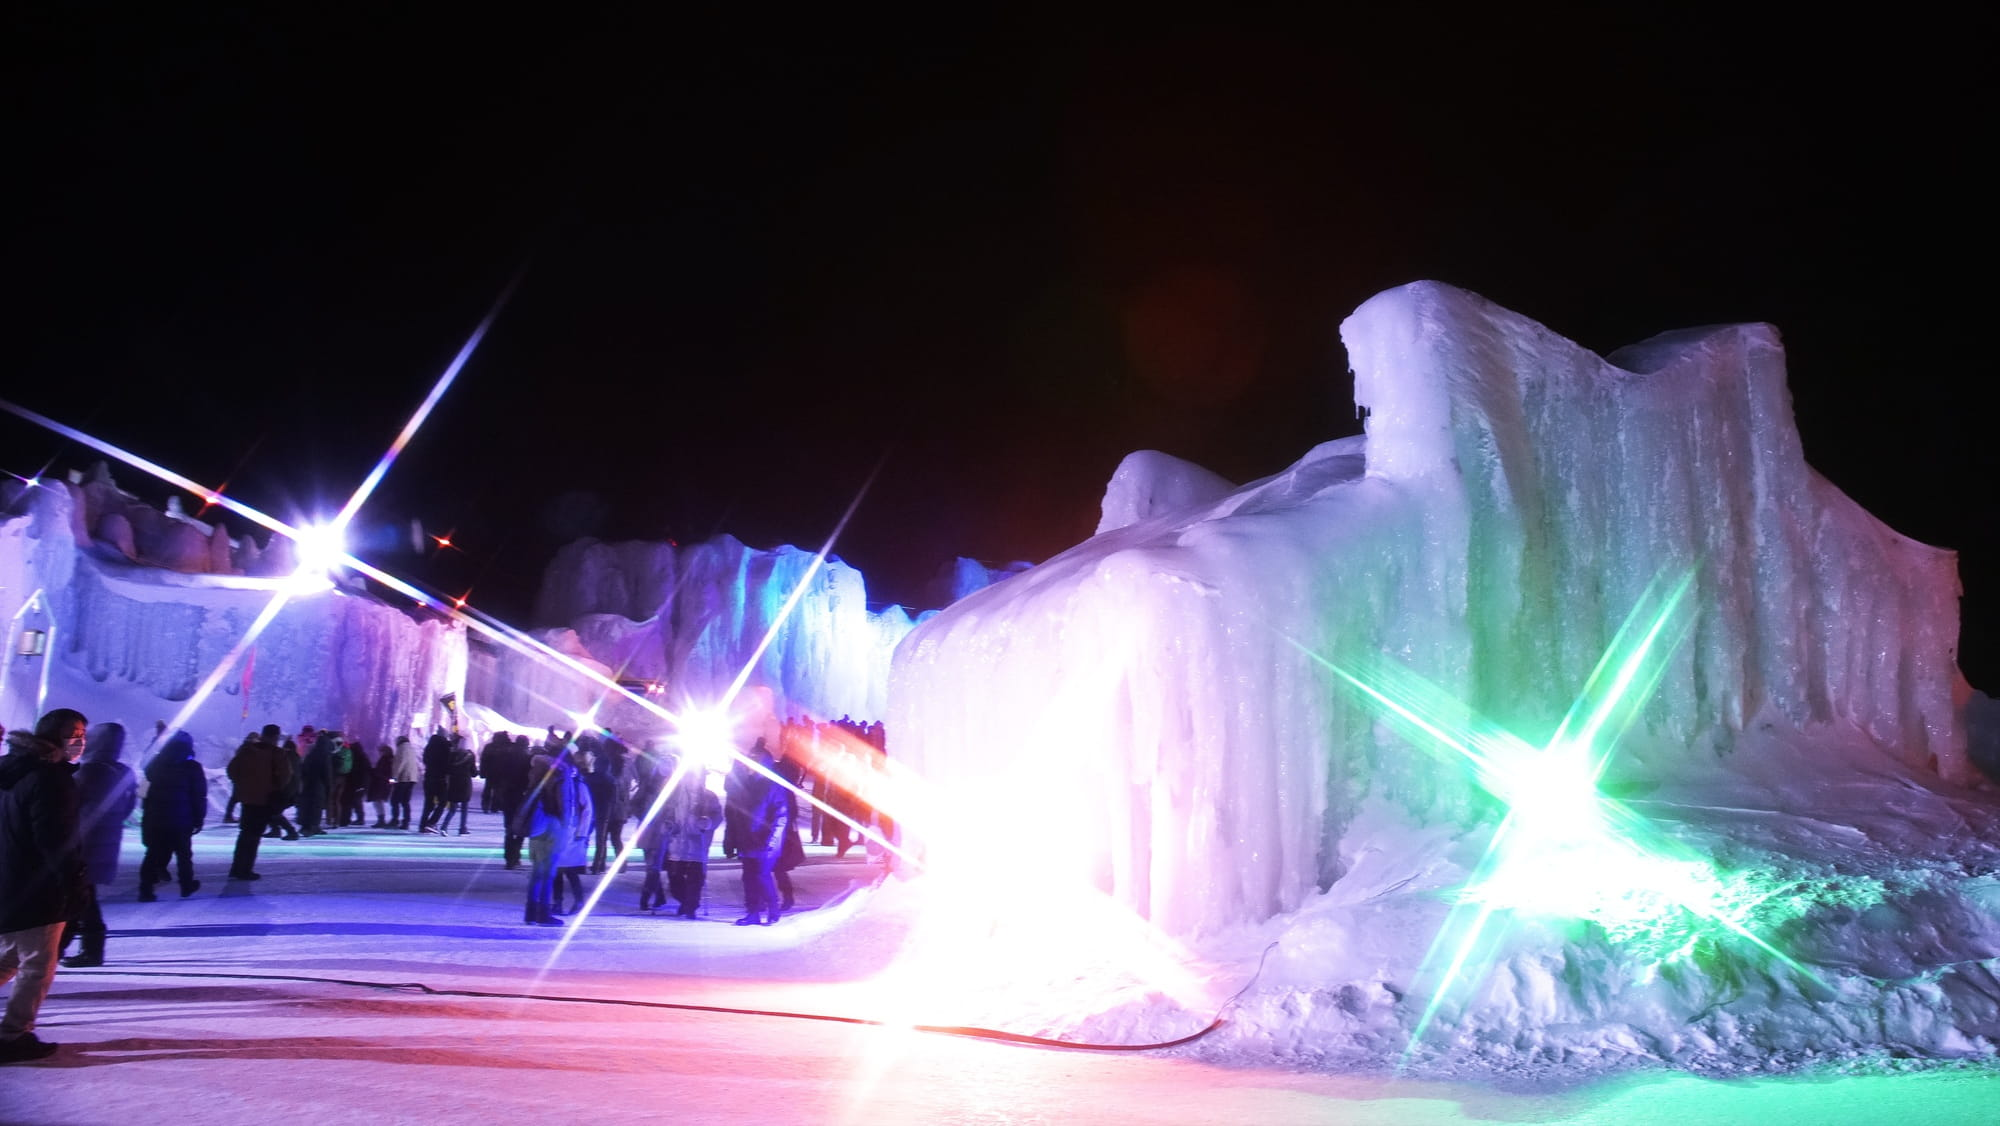 Ice Sculptures at the Sounkyo Onsen Ice Fall Festival